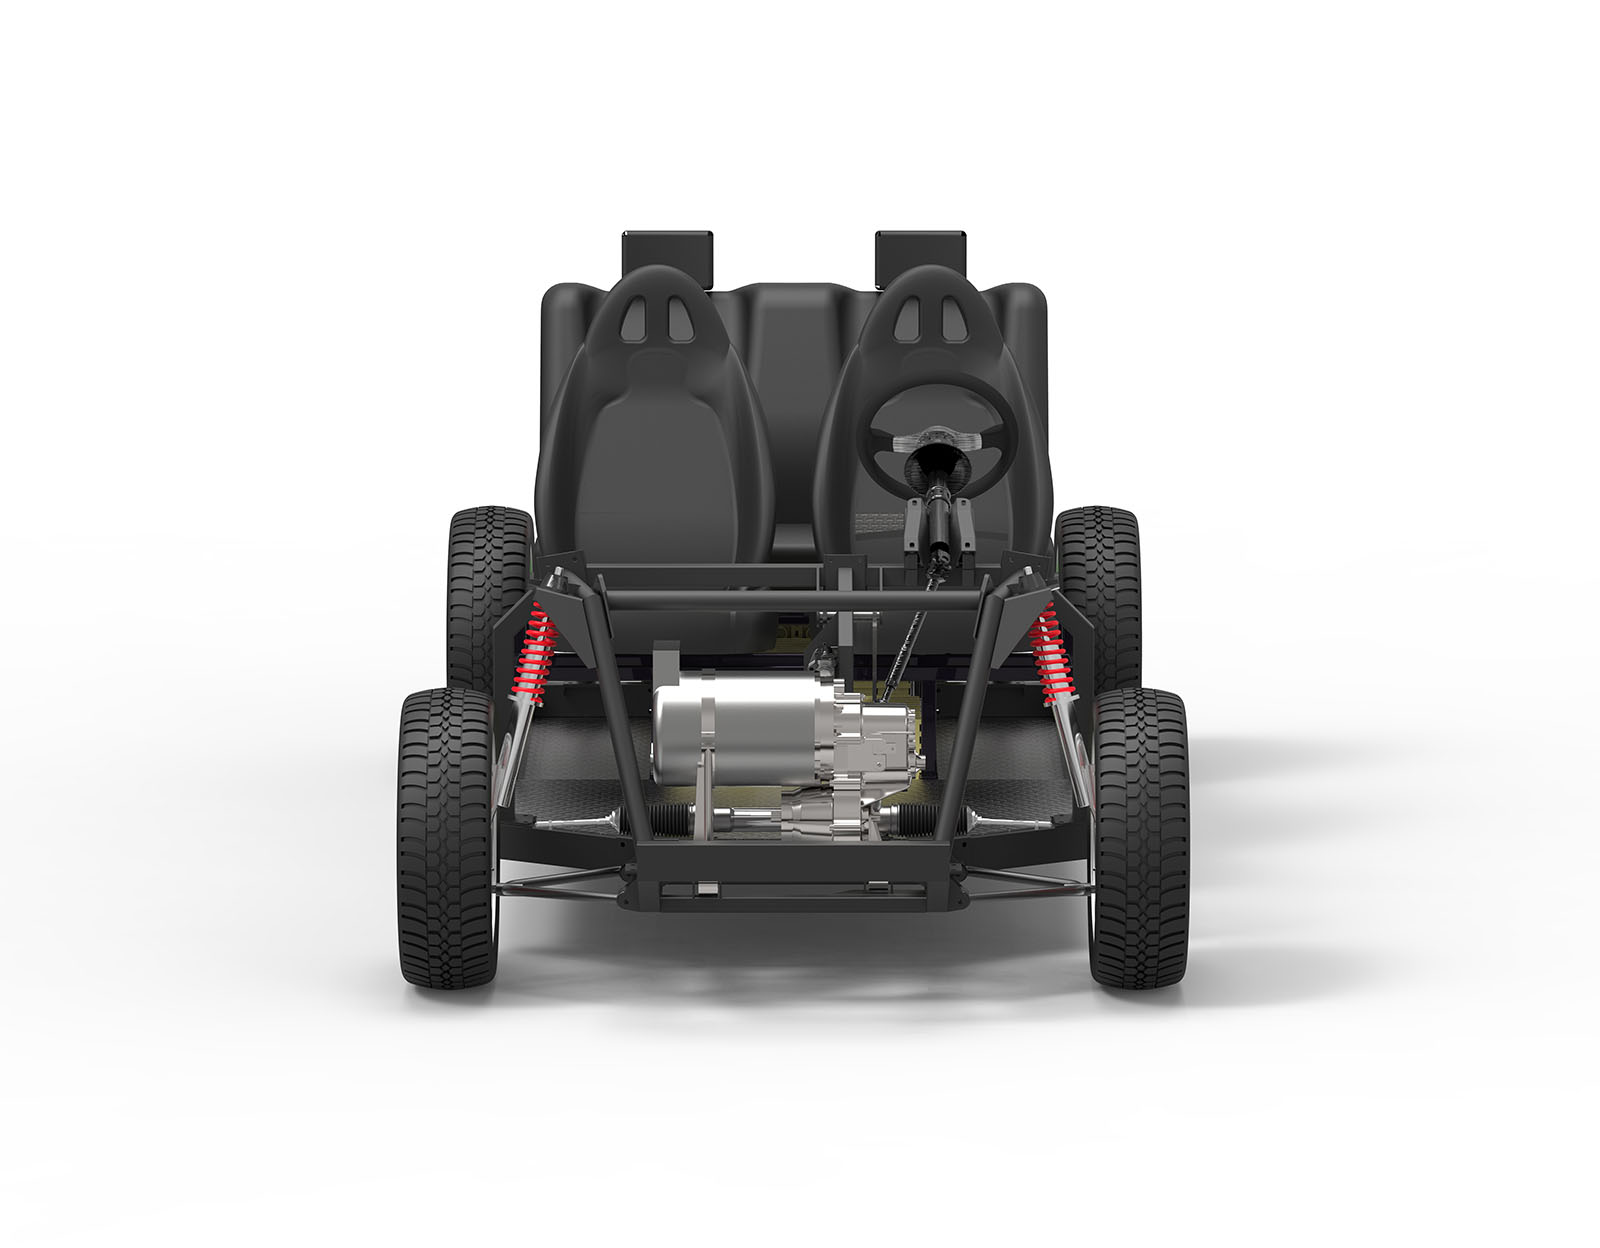 TABBY_EVO_4_seats_render_OSVehicle_os_4